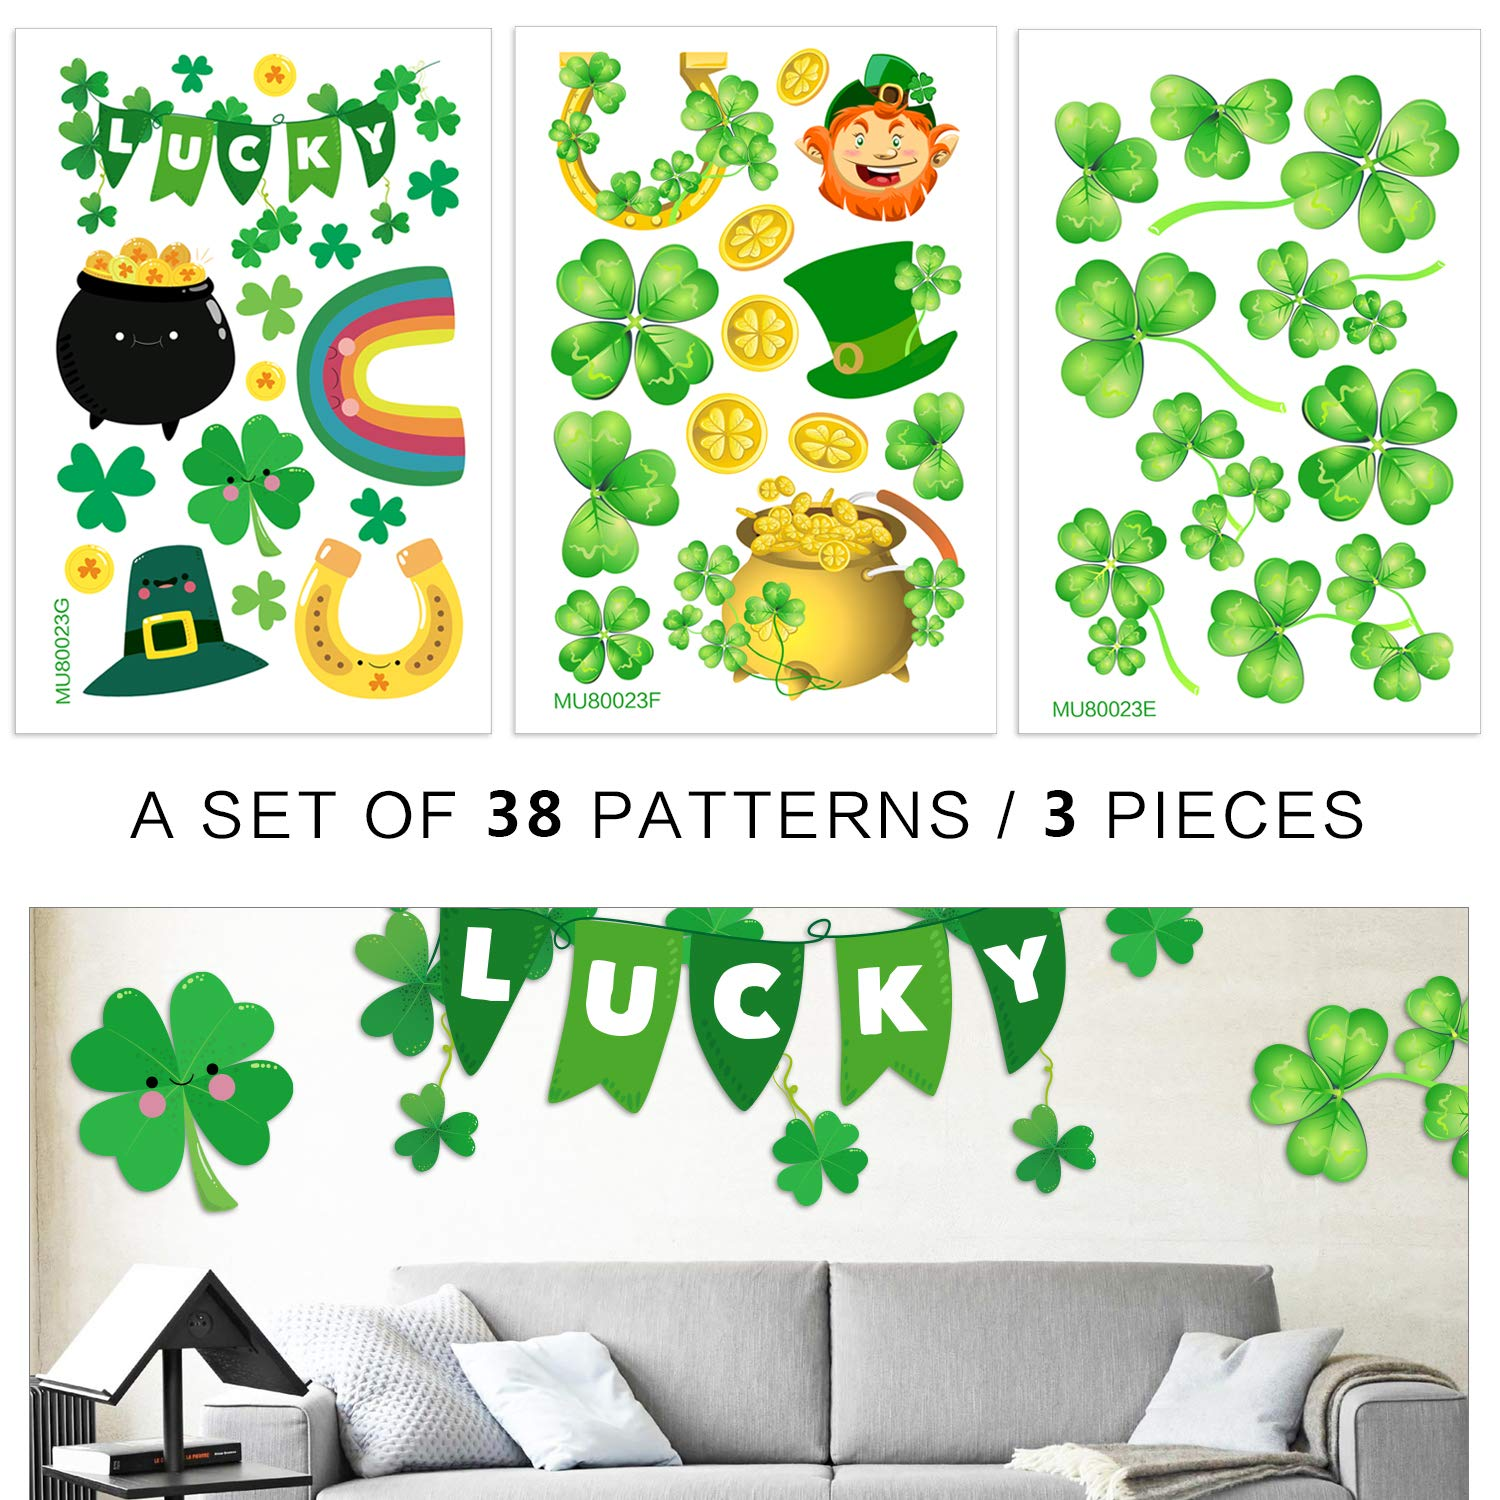 Phogary 3 Pack St Patrick's Day Window Clings Shamrock Gold Coin Holiday Stickers 38 Patterns Decal, St Patricks Decorations Party Supplies